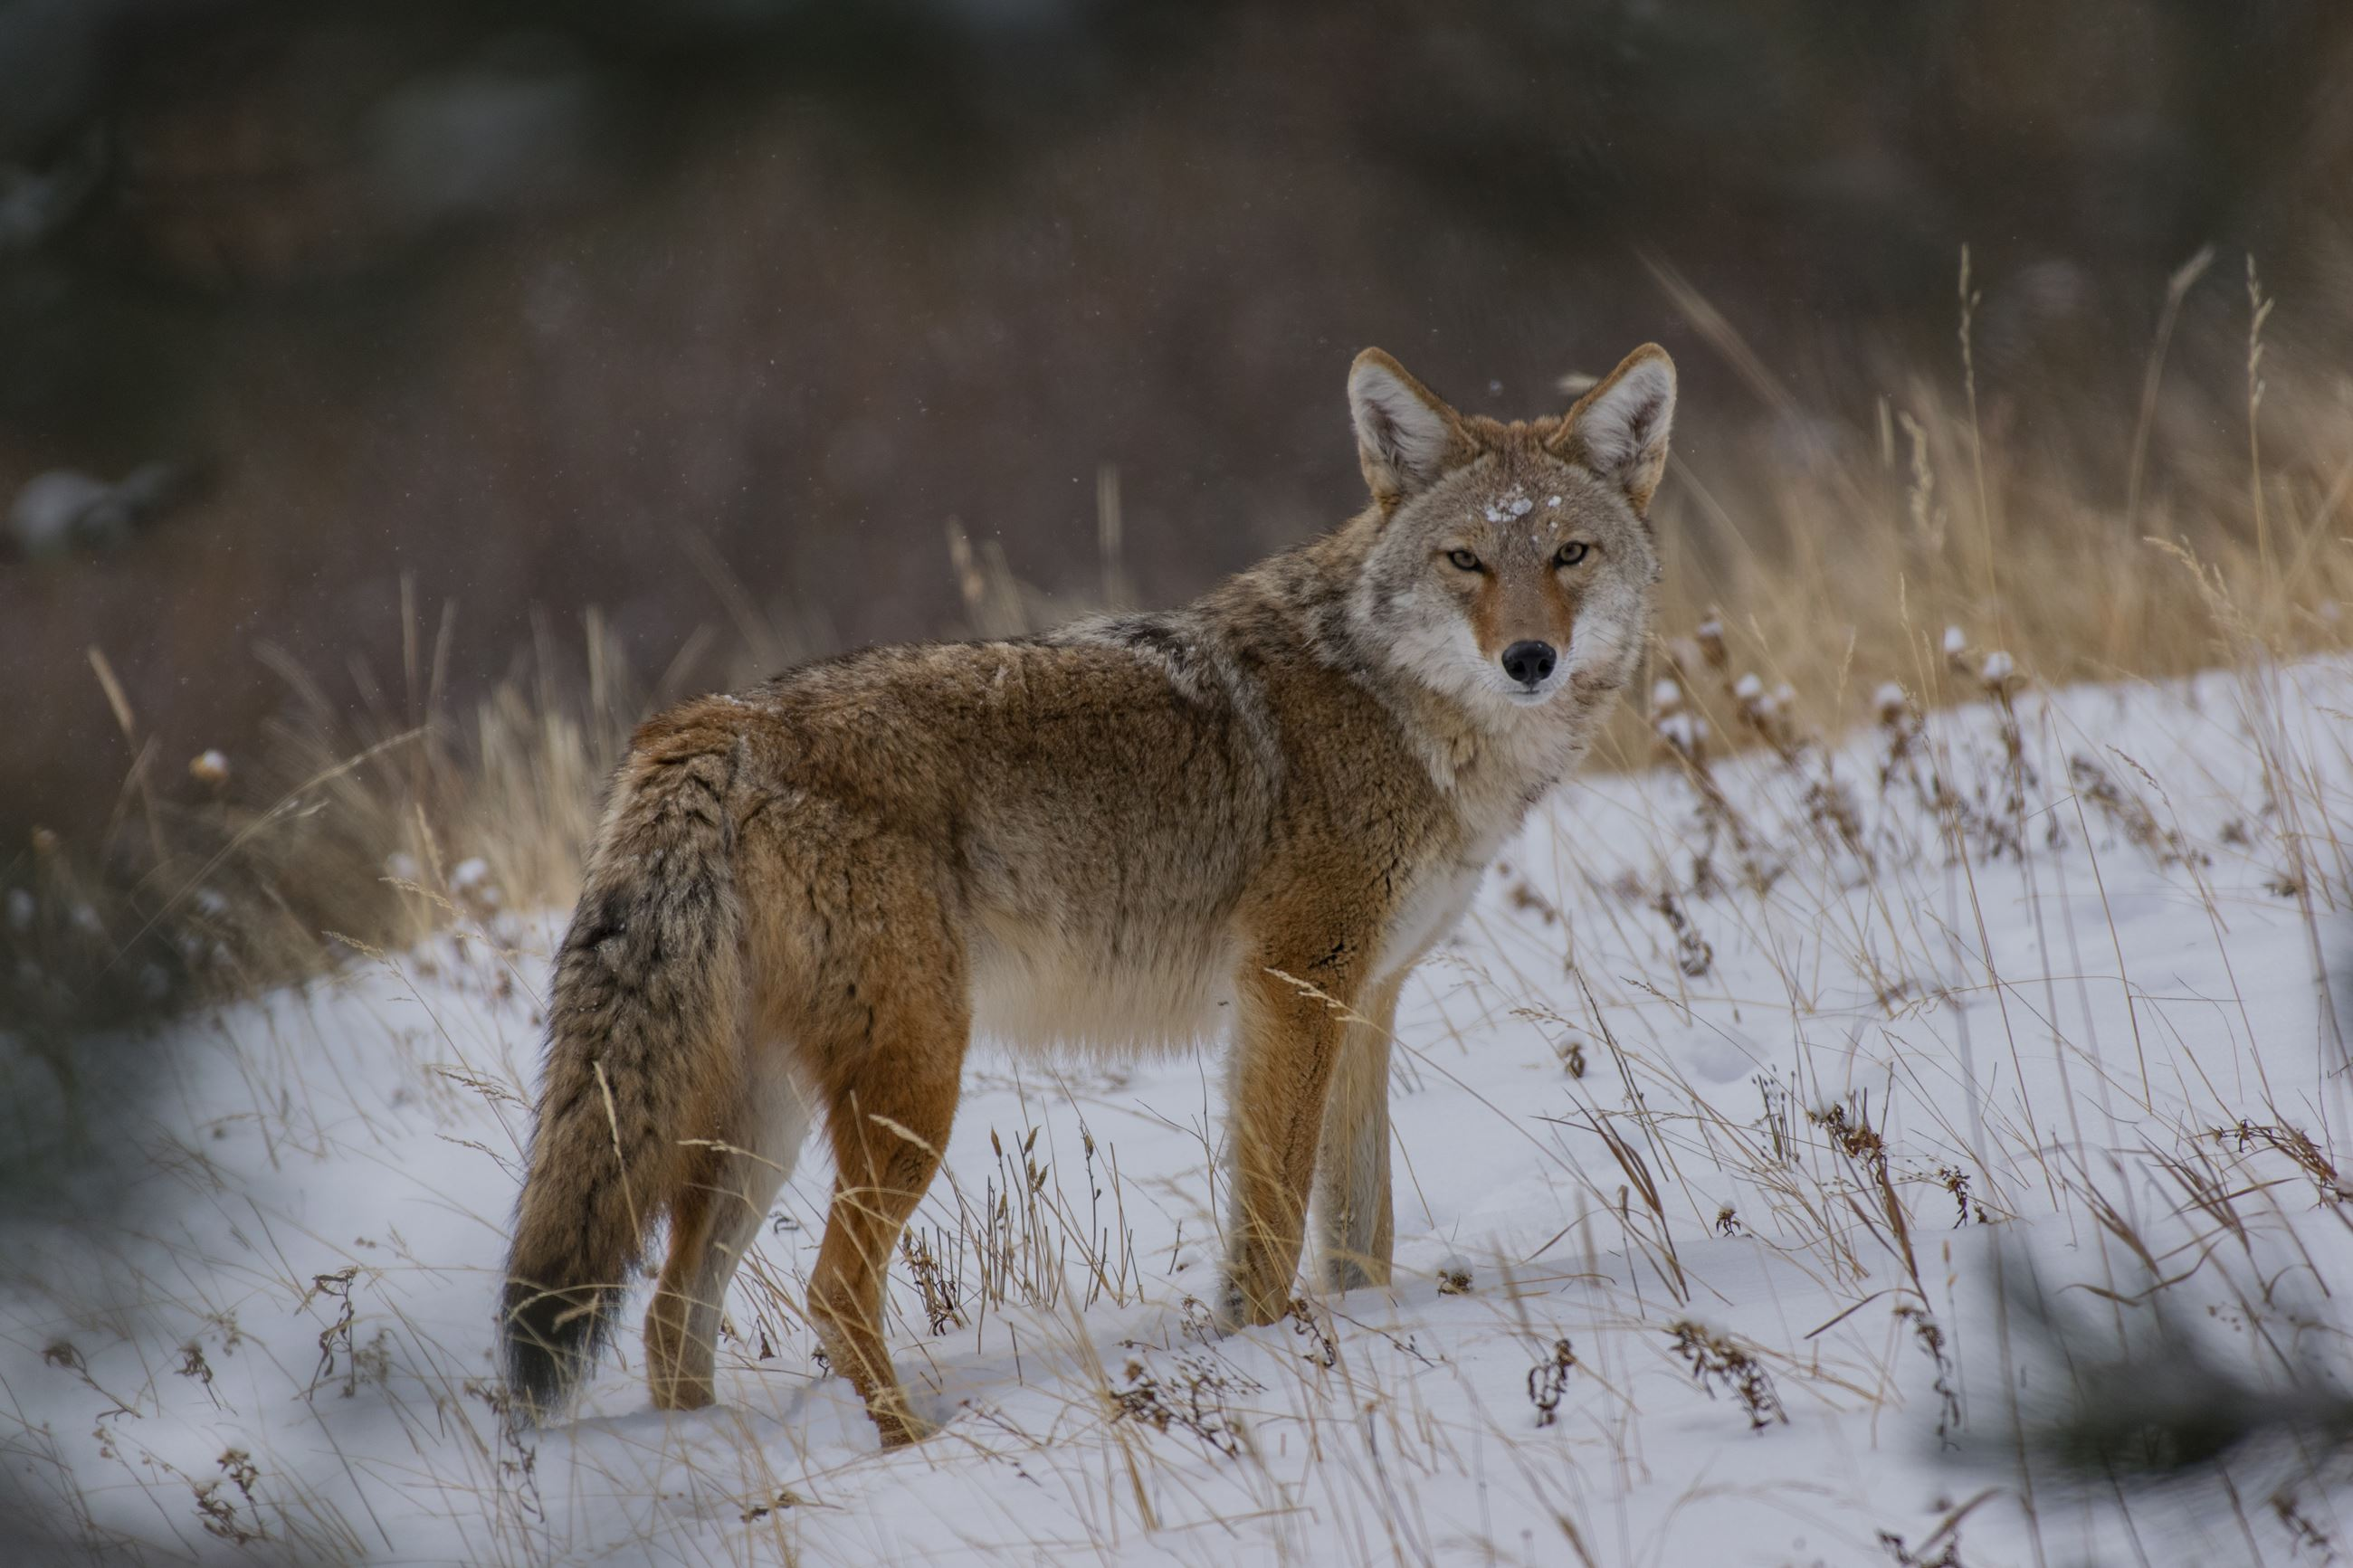 coyote in winter scene